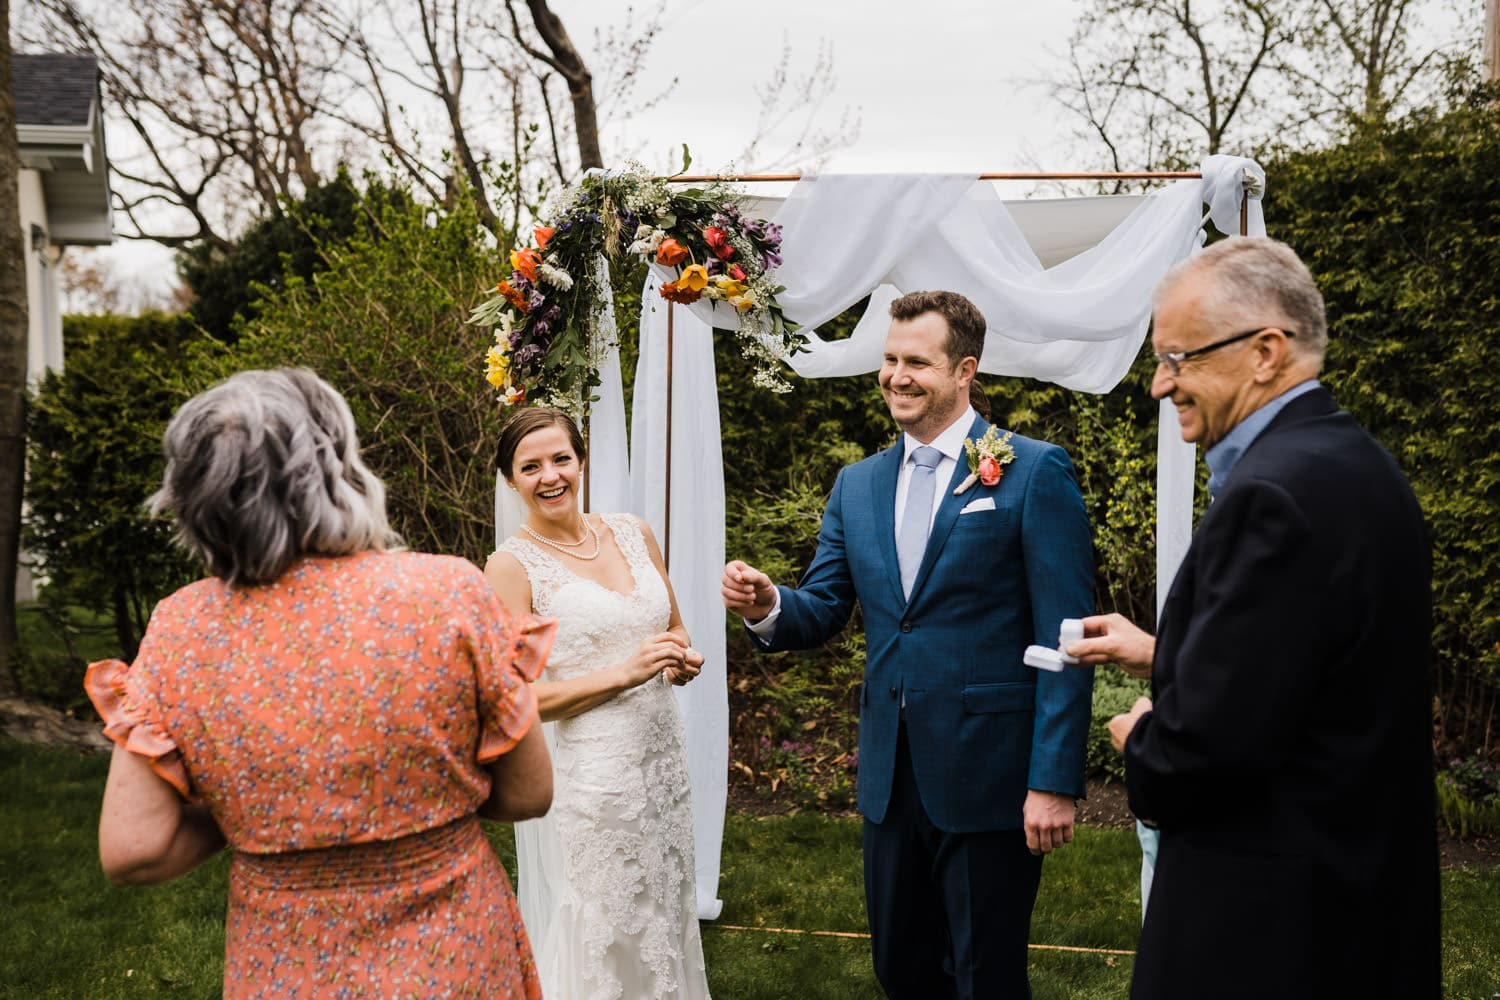 couple laughs as they get ready to exchange rings - intimate backyard ceremony